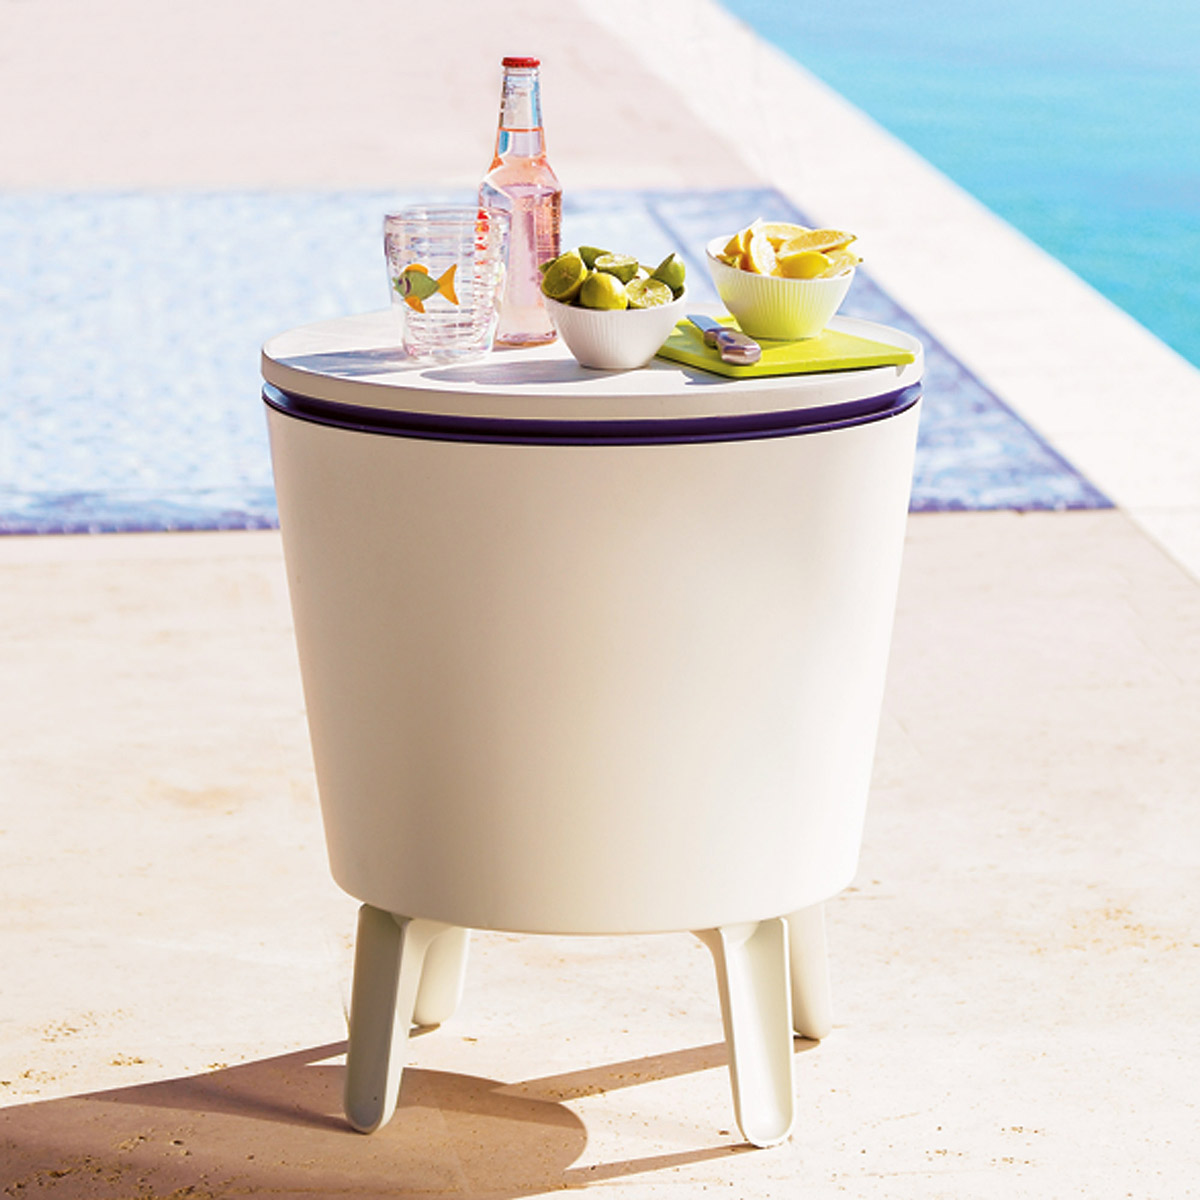 outdoor side table beverage cooler with ice bucket gallerie acrylic lamp small white bedside ikea modern nest coffee tables folding patio wood top decorative storage cabinet